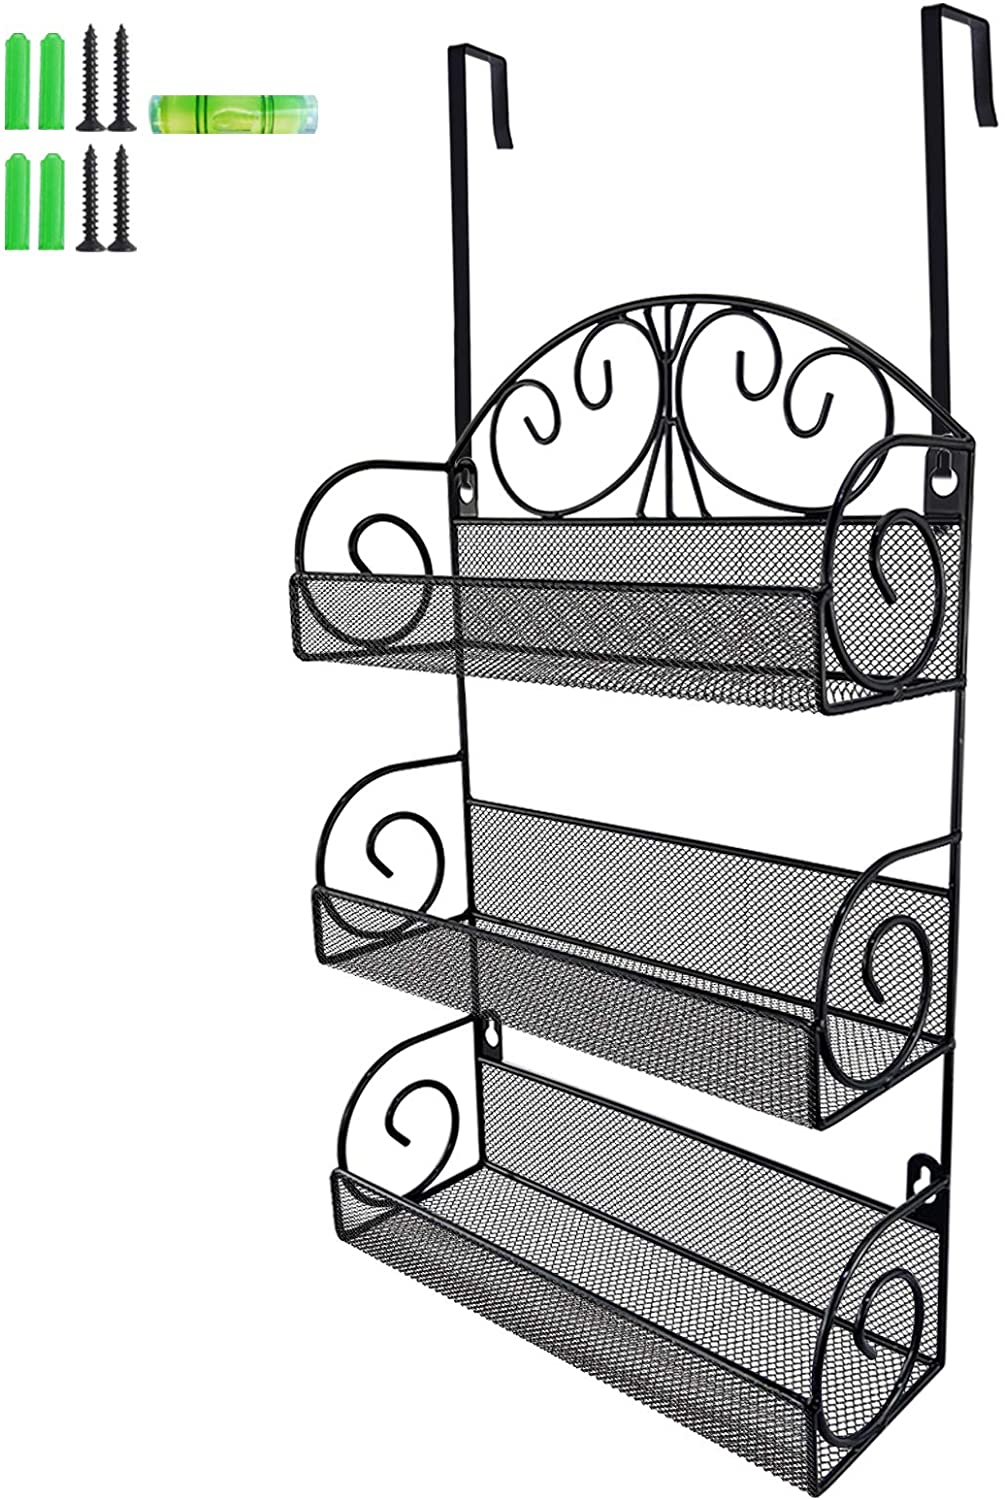 Giftgarden 3 Tier Metal Spice Rack with 2 Hooks for Kitchen, Pantry, Cabinet, Door, Bathroom or Counter Top as Storage Organizer Shelf, Wall Mount or Free Standing-Black Bronze Finish